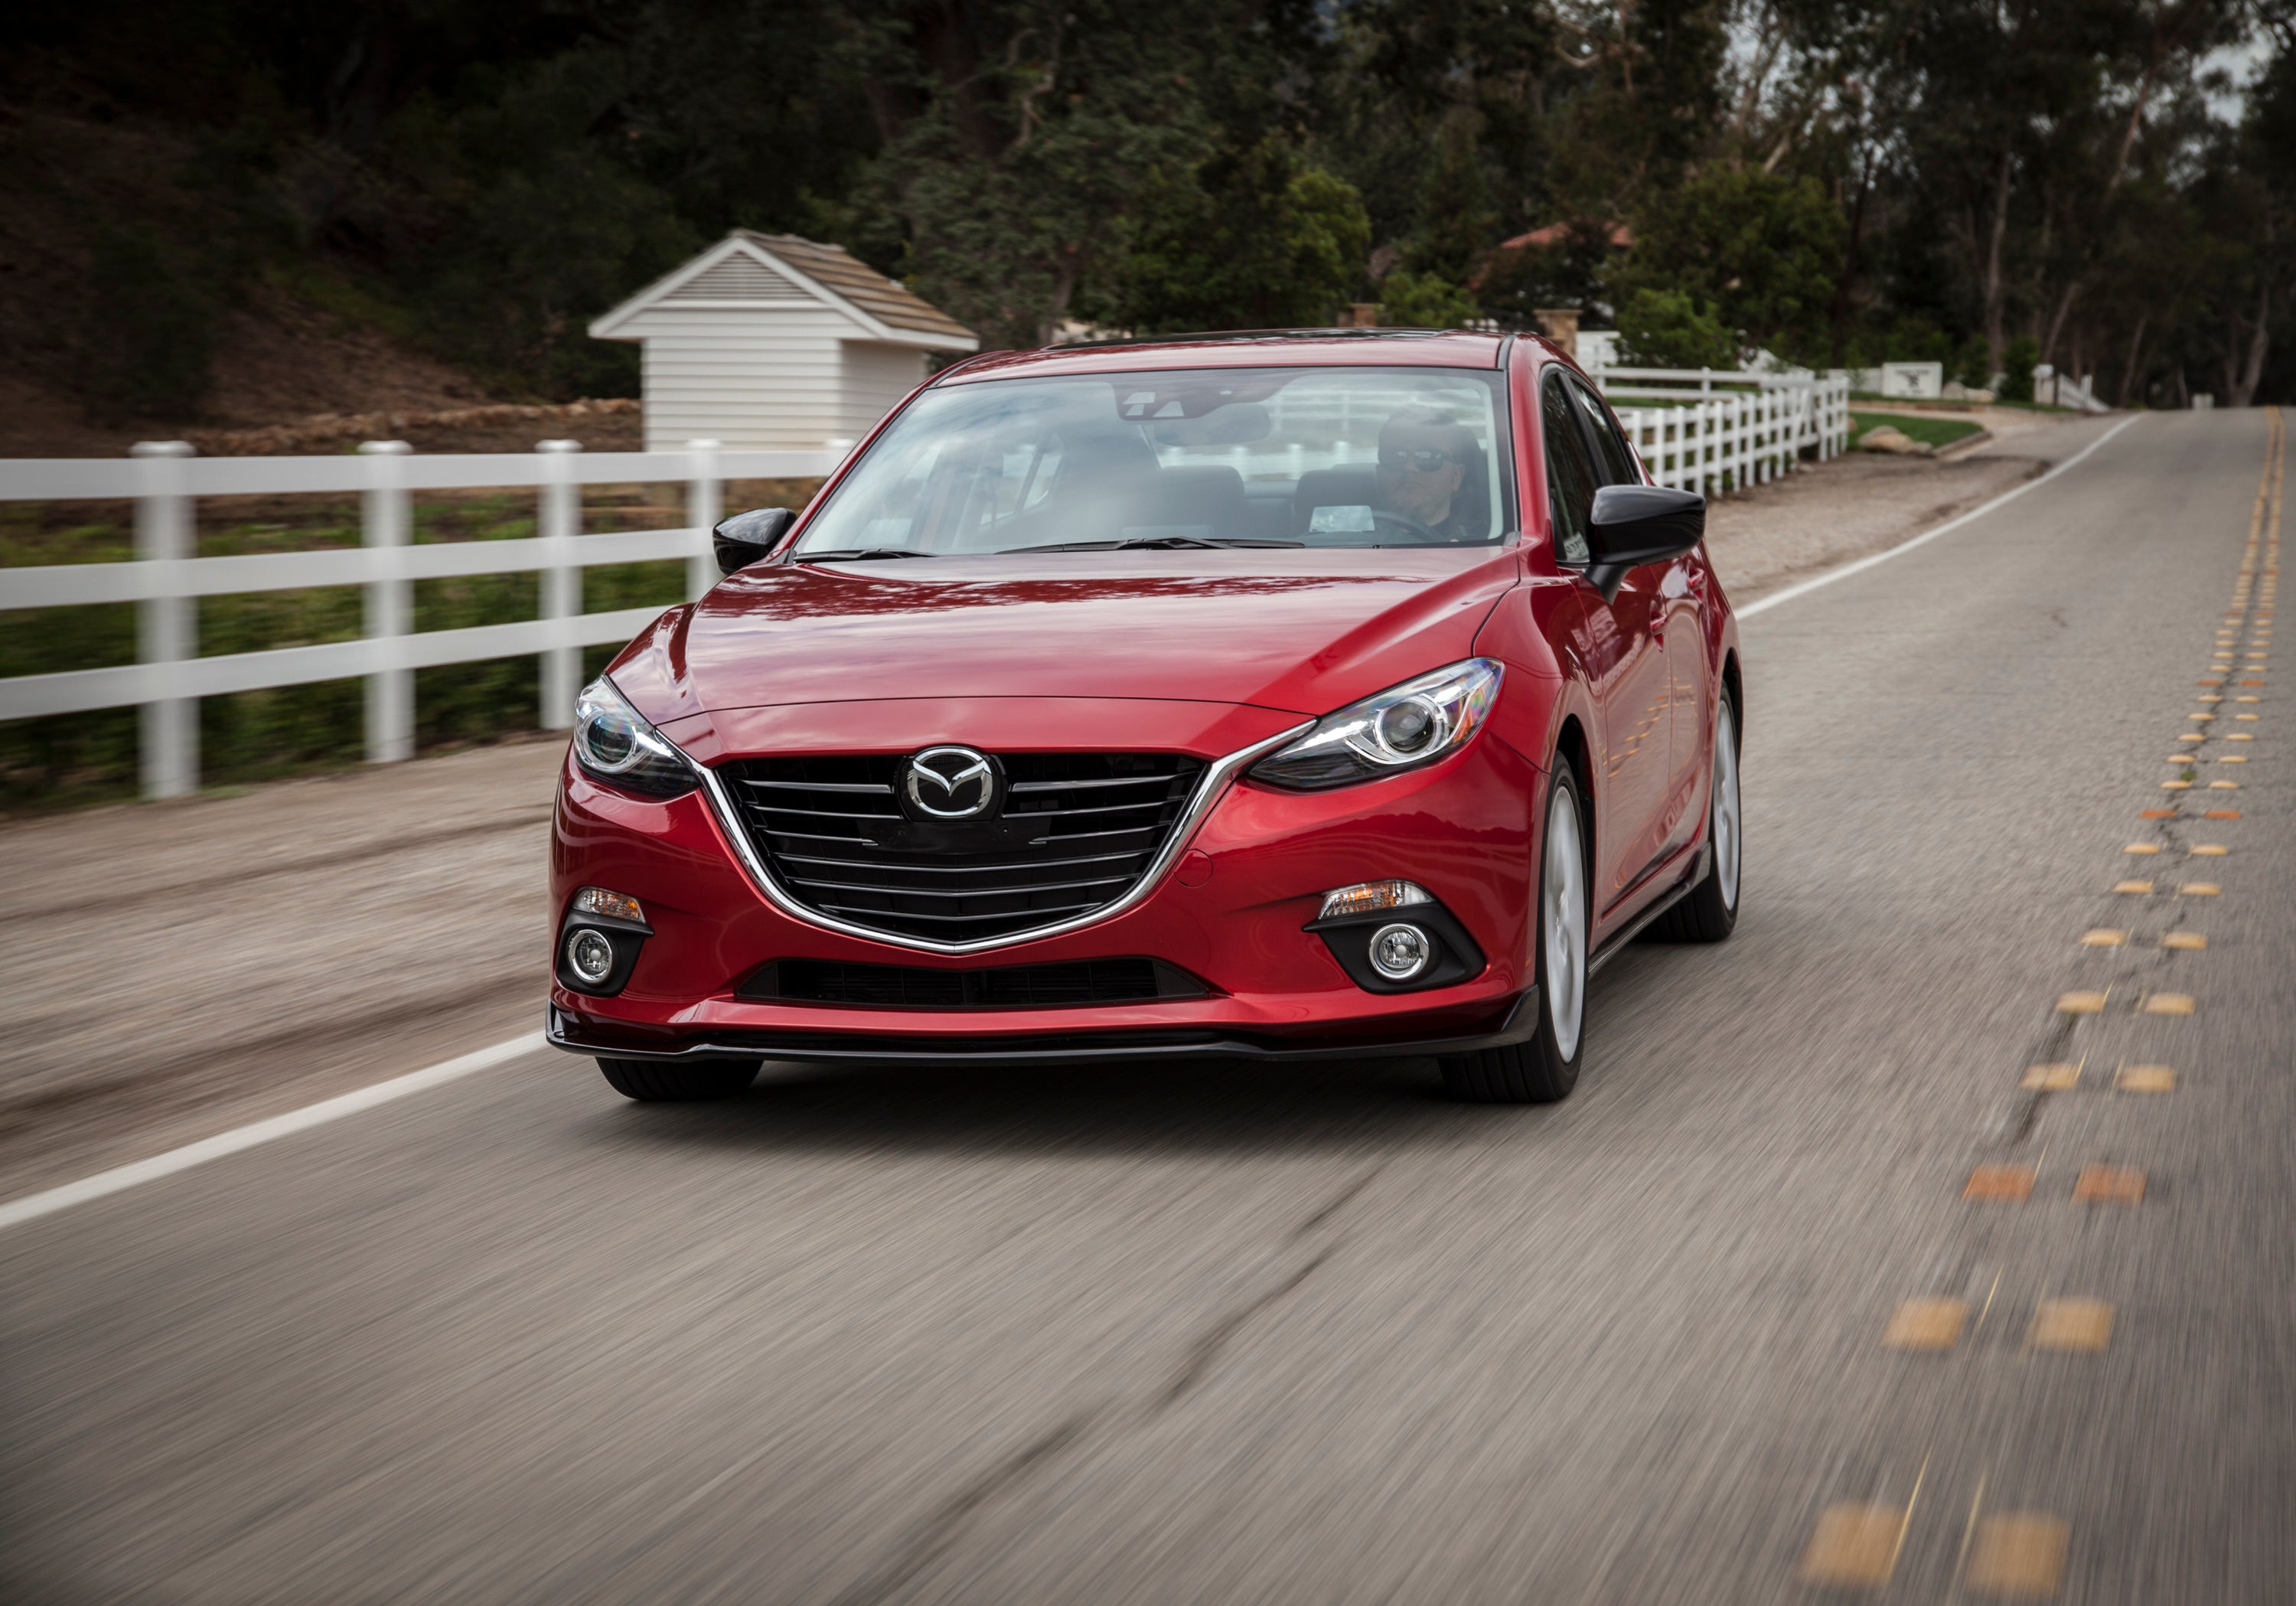 Kelley Blue Book released its annual list of cool wheels that won't break the bank. The Mazda3 took the top spot for the third year in a row.